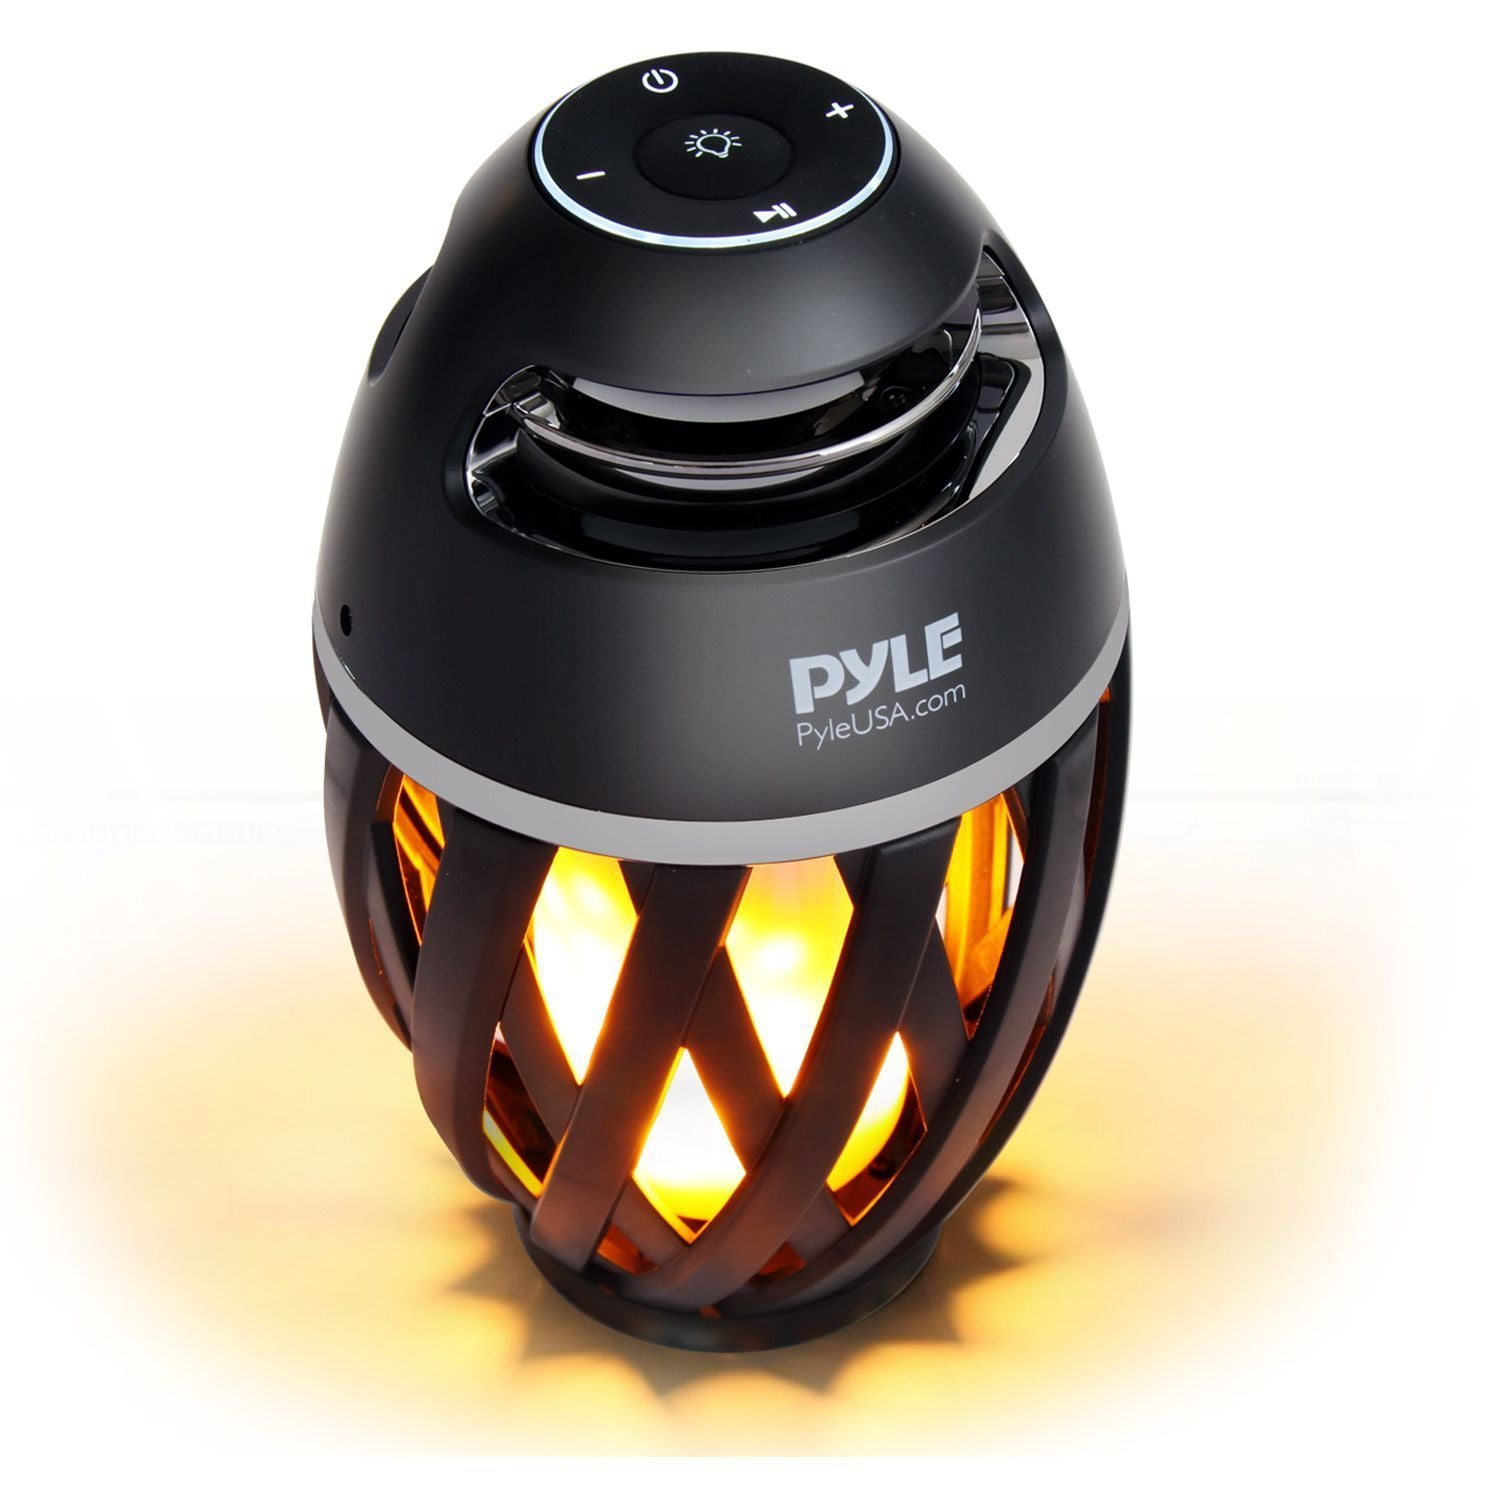 Pyle Portable Bluetooth Speaker, Candle Style LED Light - Waterproof Wireless Stereo Boombox (PLEDFSP18)